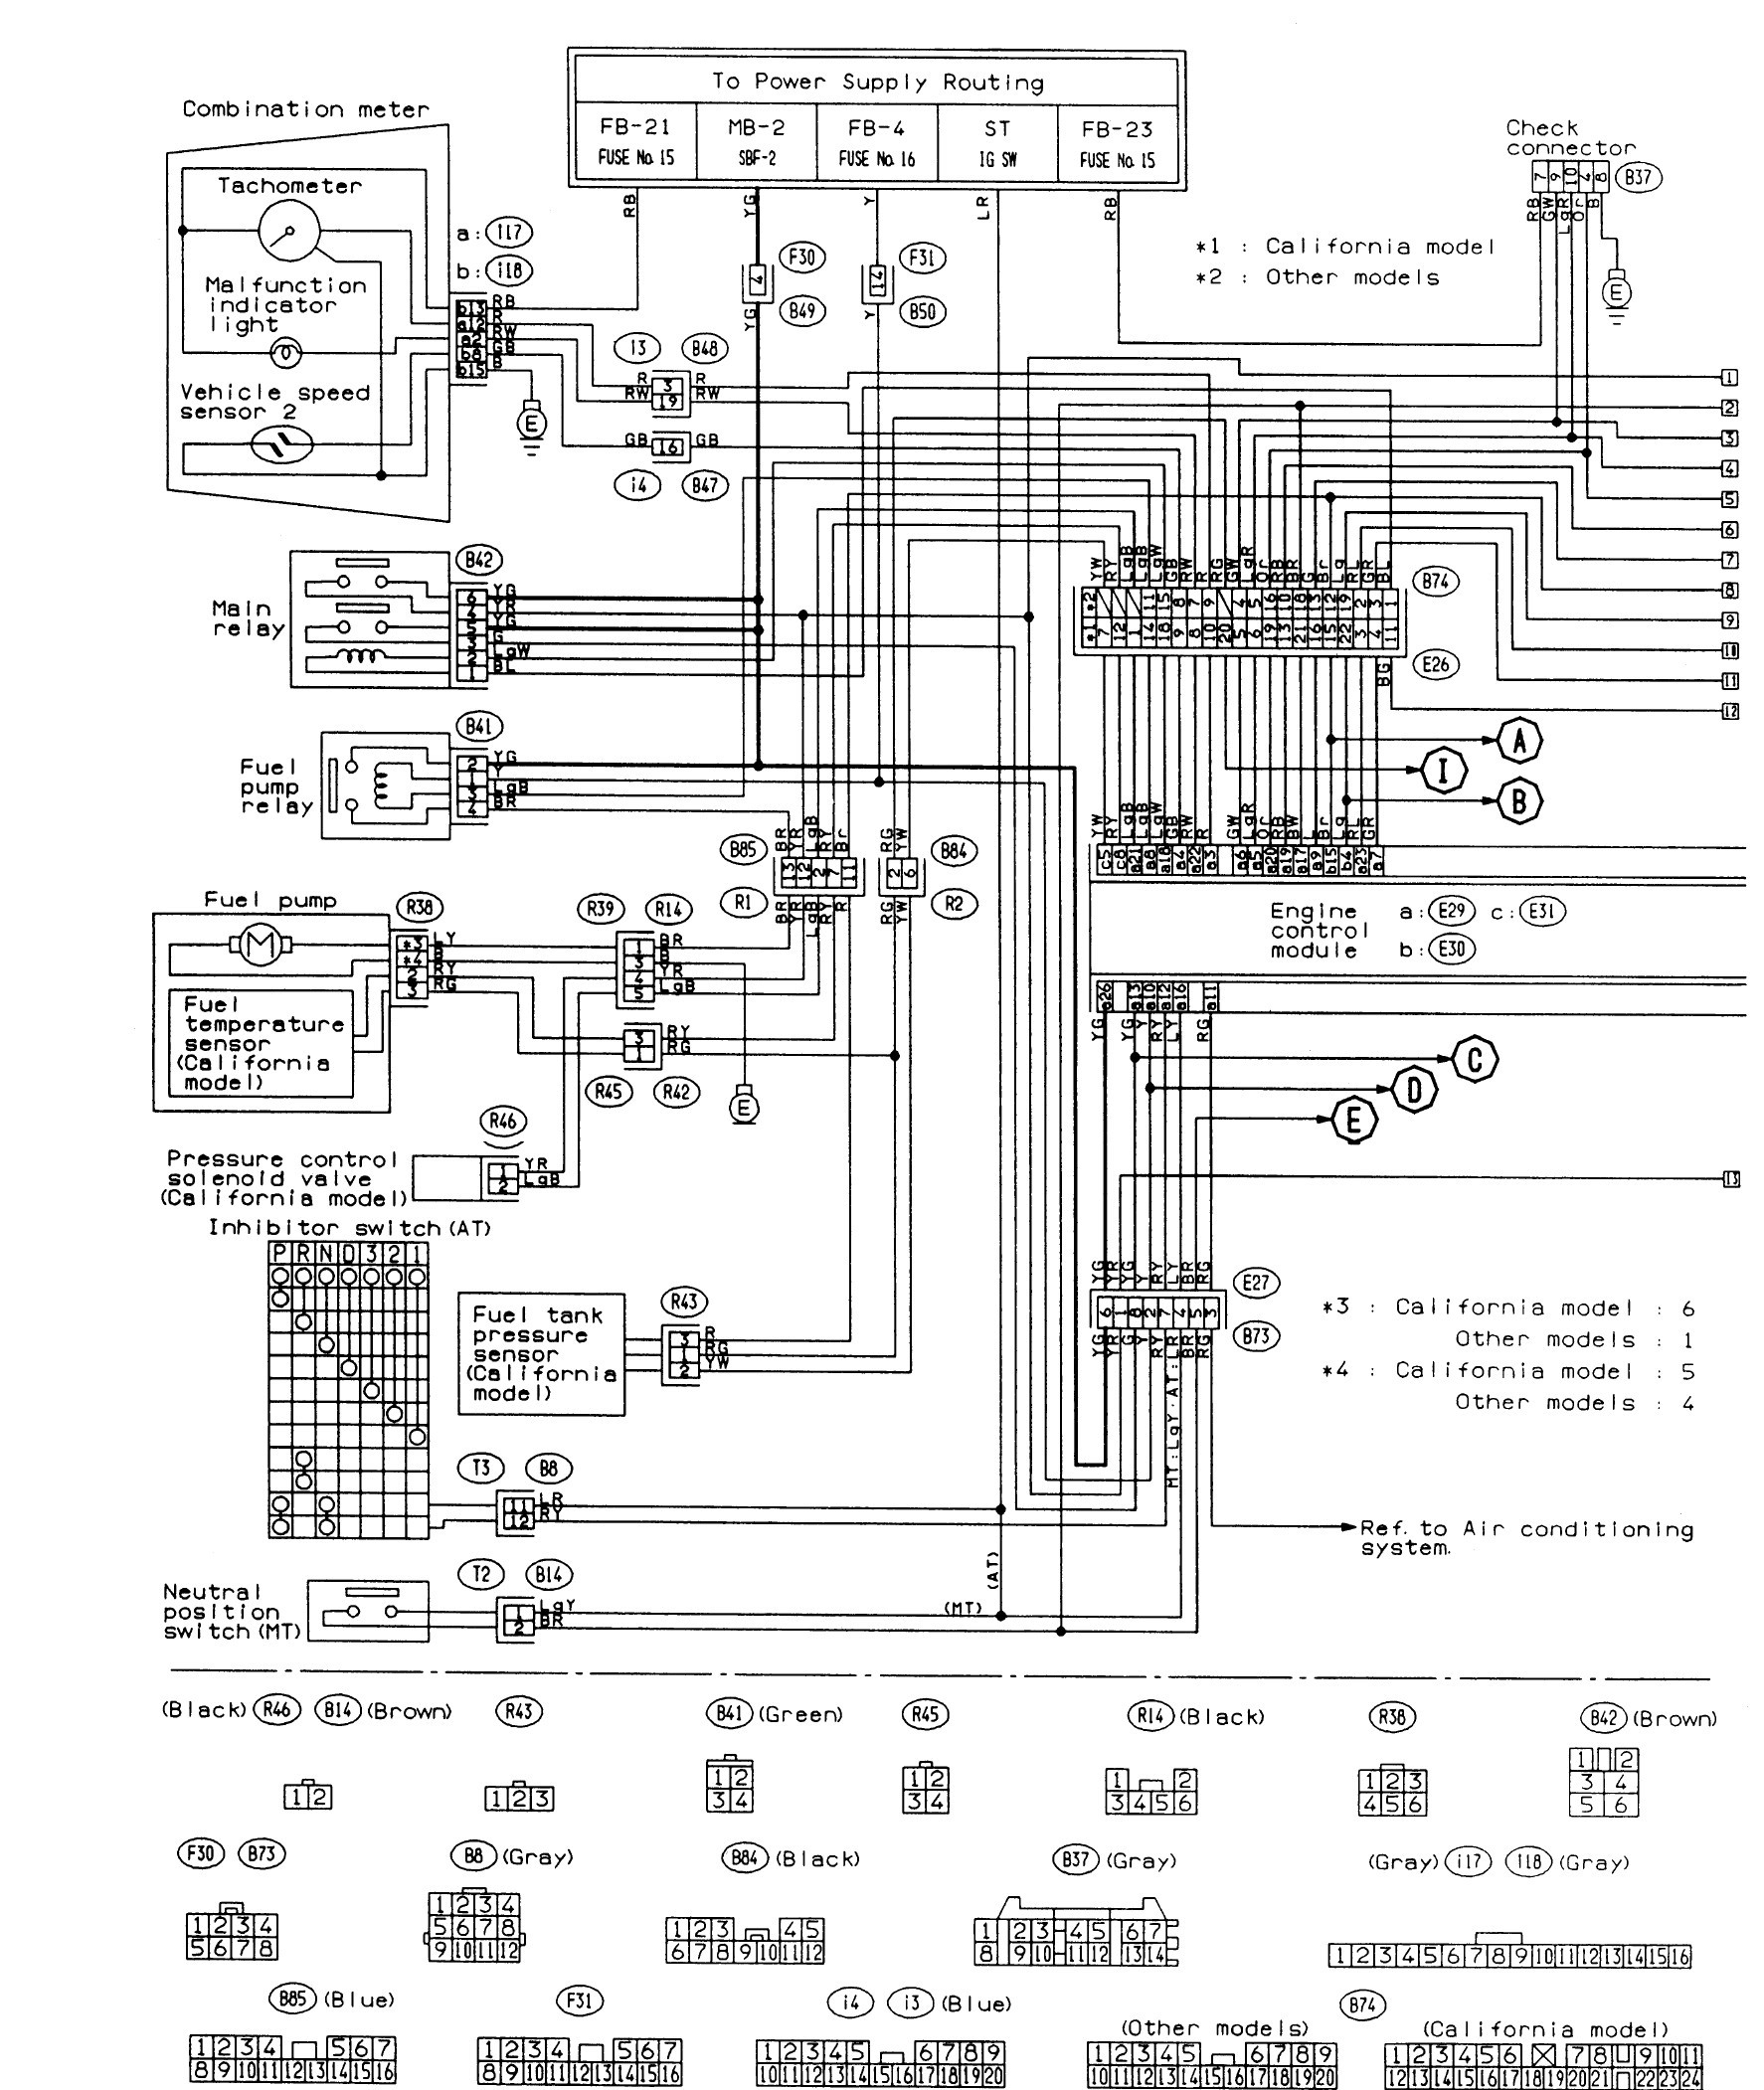 Wiring Harness For 2007 Subaru Outback - 1973 Satellite Wiring Diagram for Wiring  Diagram SchematicsWiring Diagram and Schematics